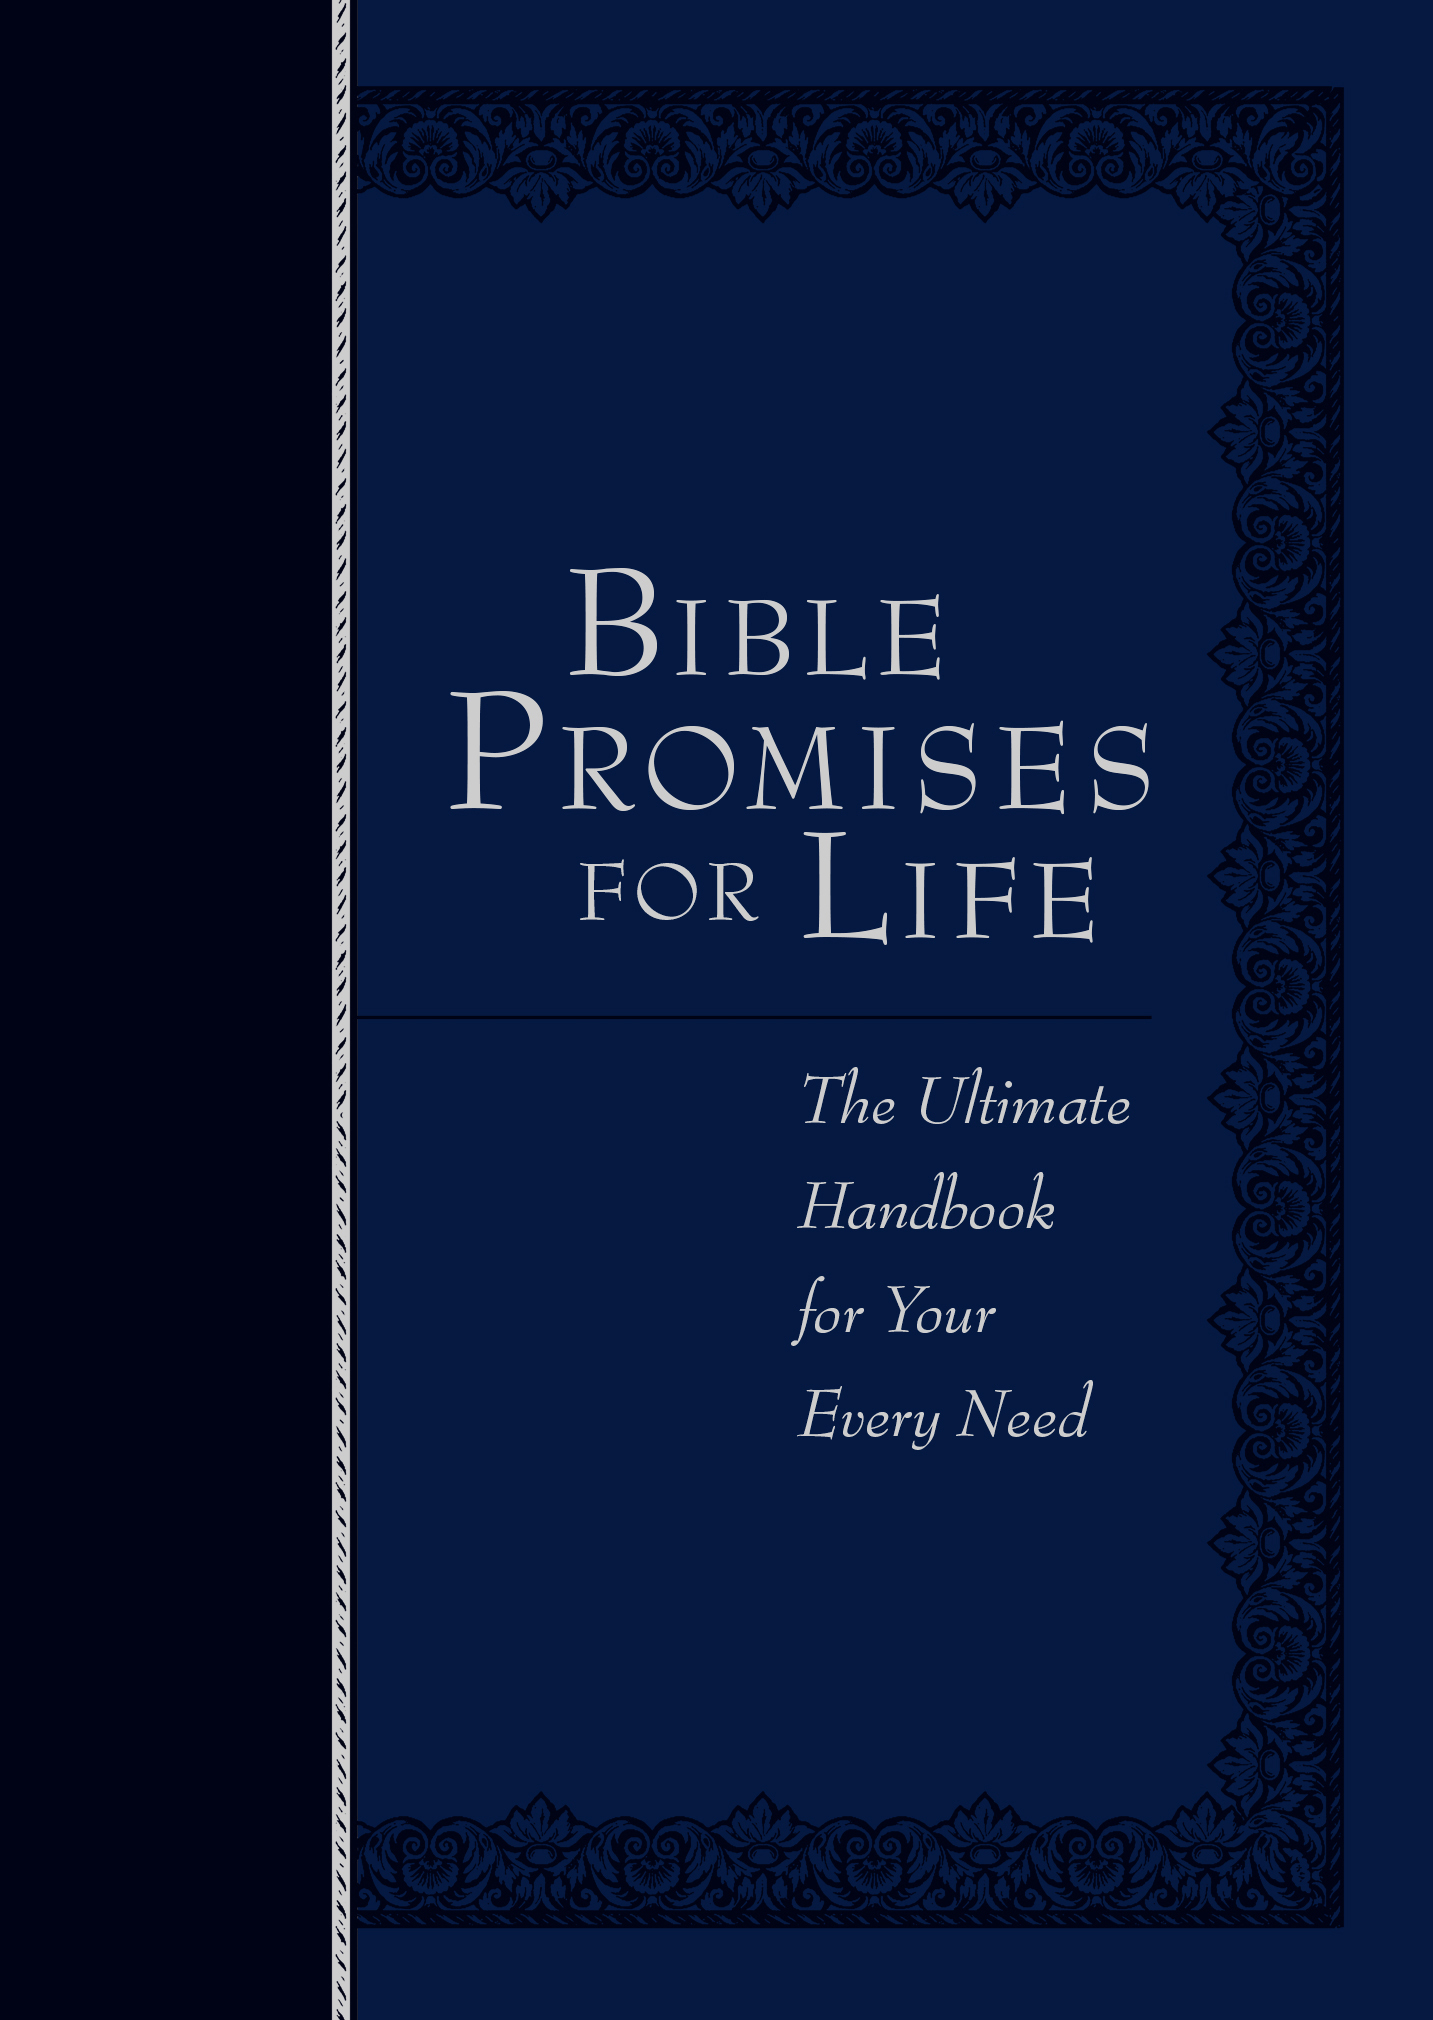 Bible Promises for Life (Navy Faux Leather Edition): The Ultimate Handbook for Your Every Need